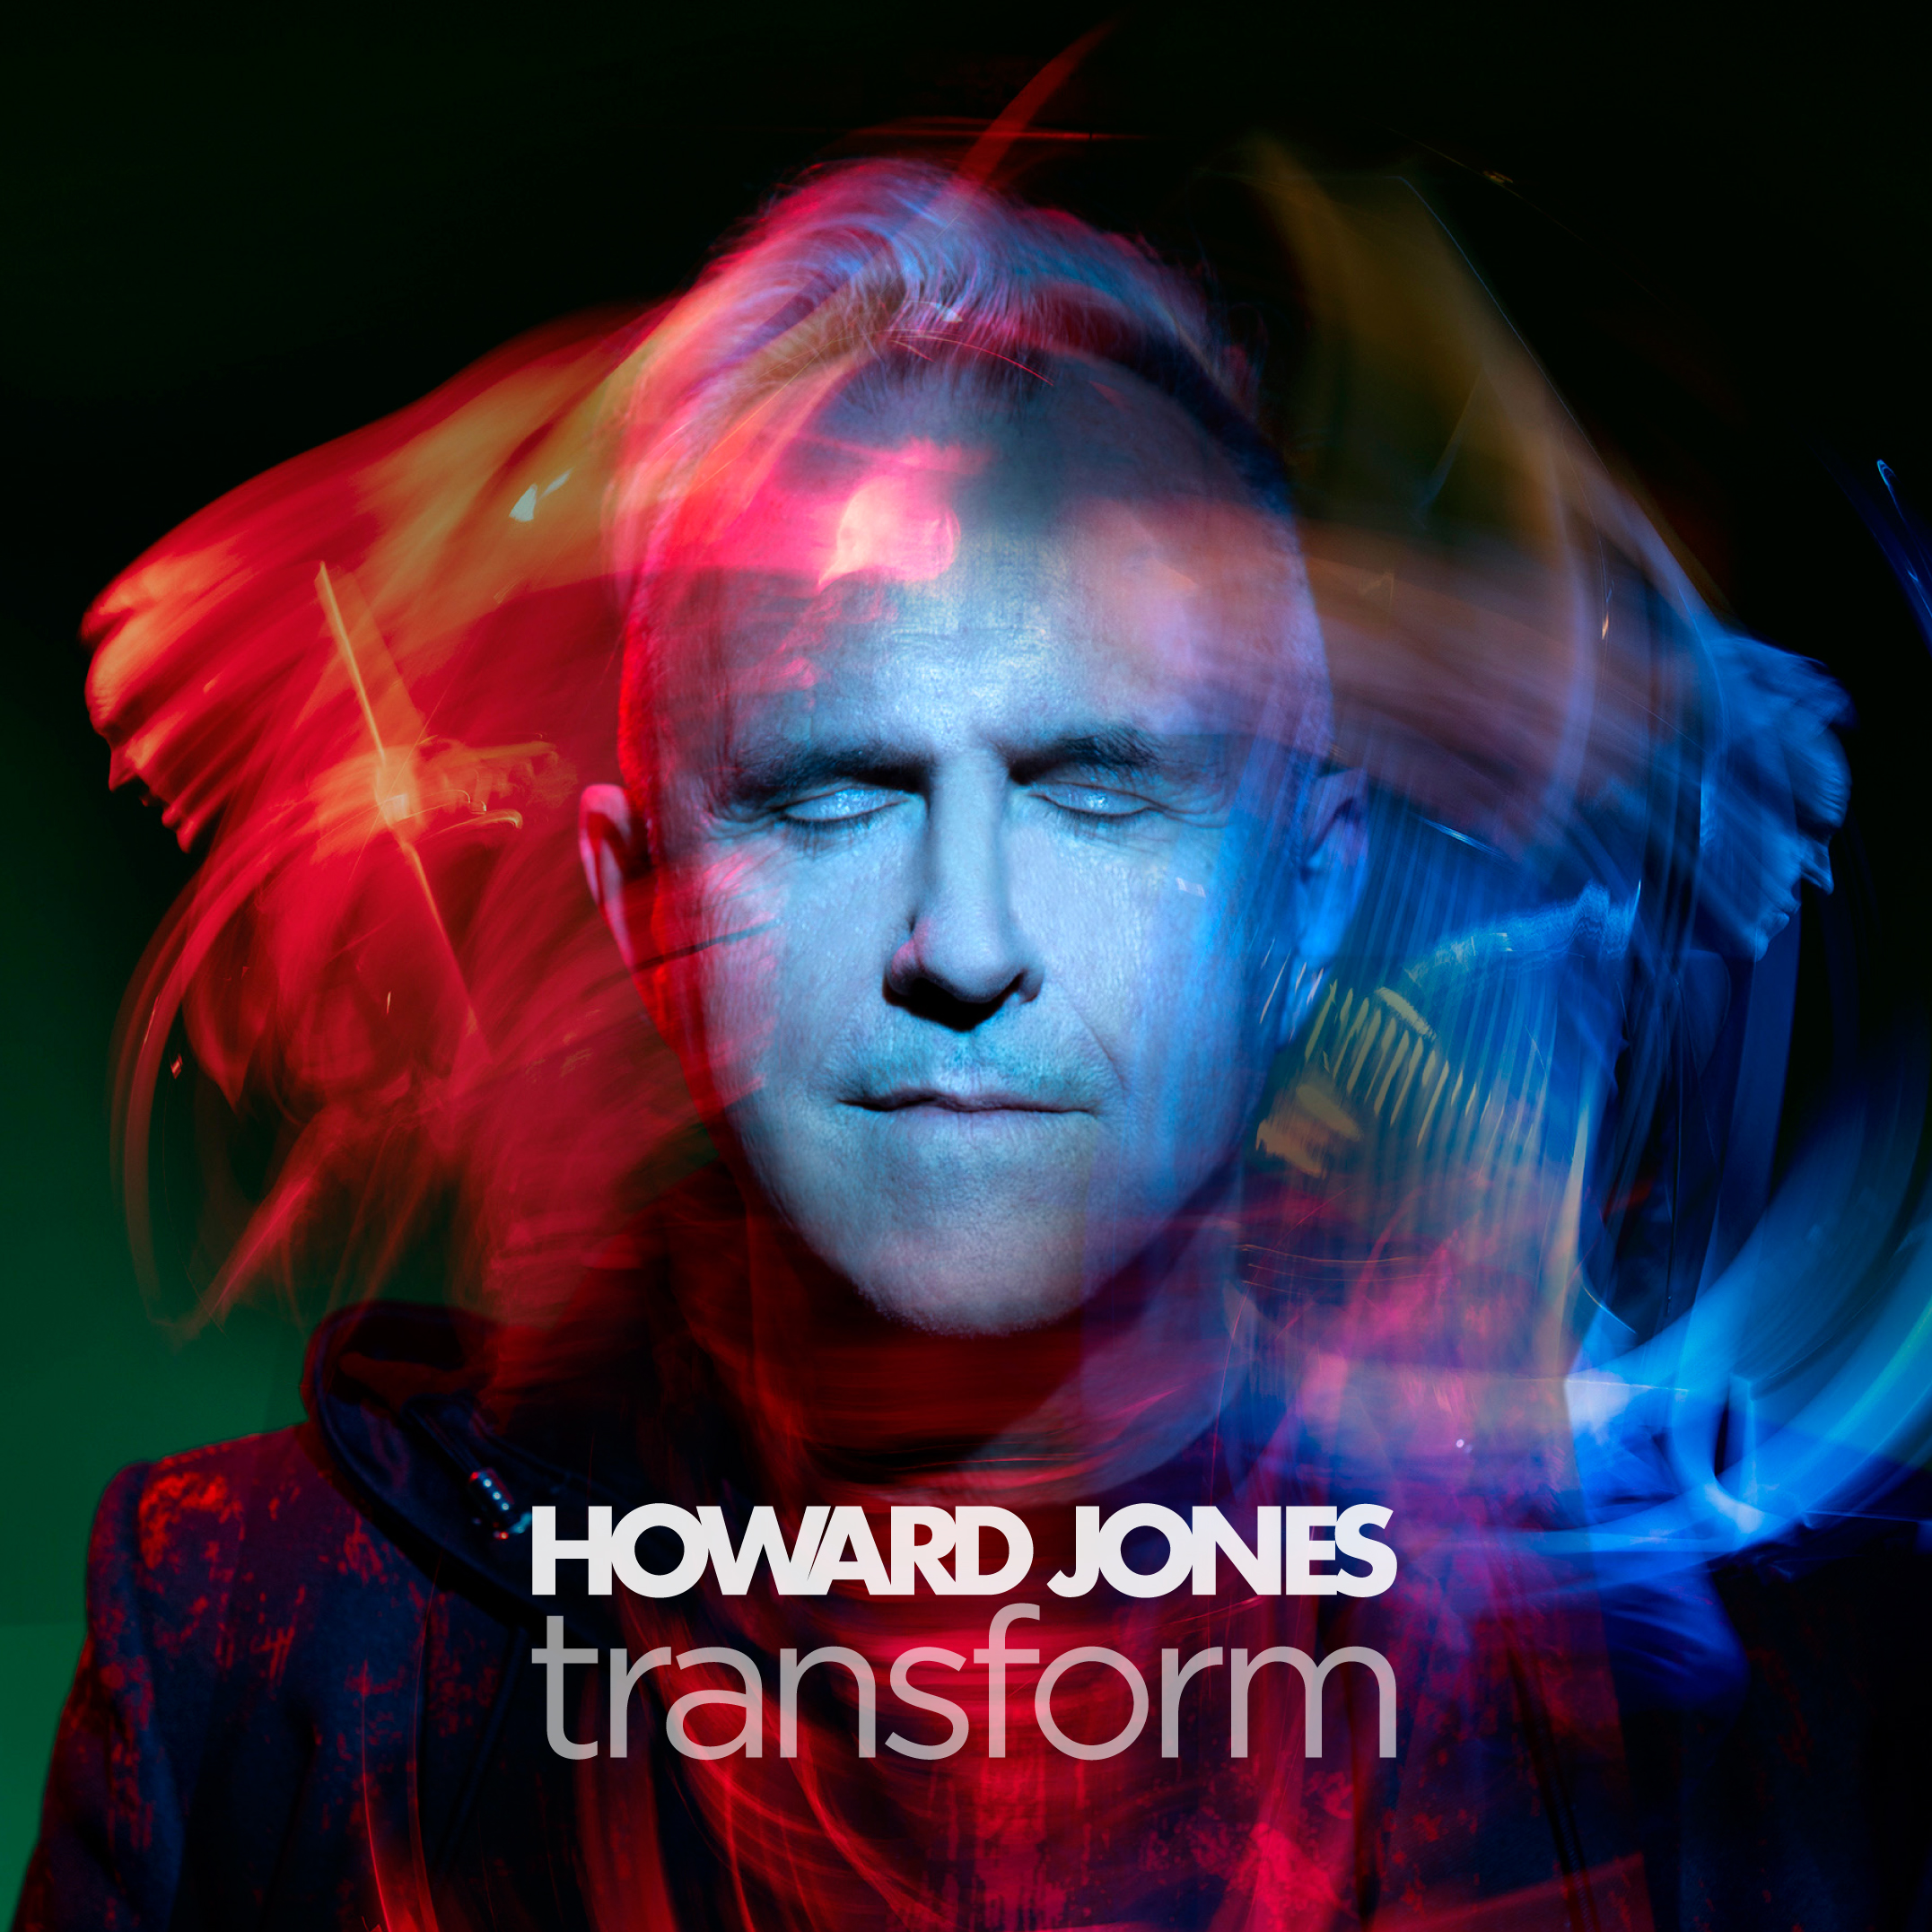 Howard Jones - 'Transform'